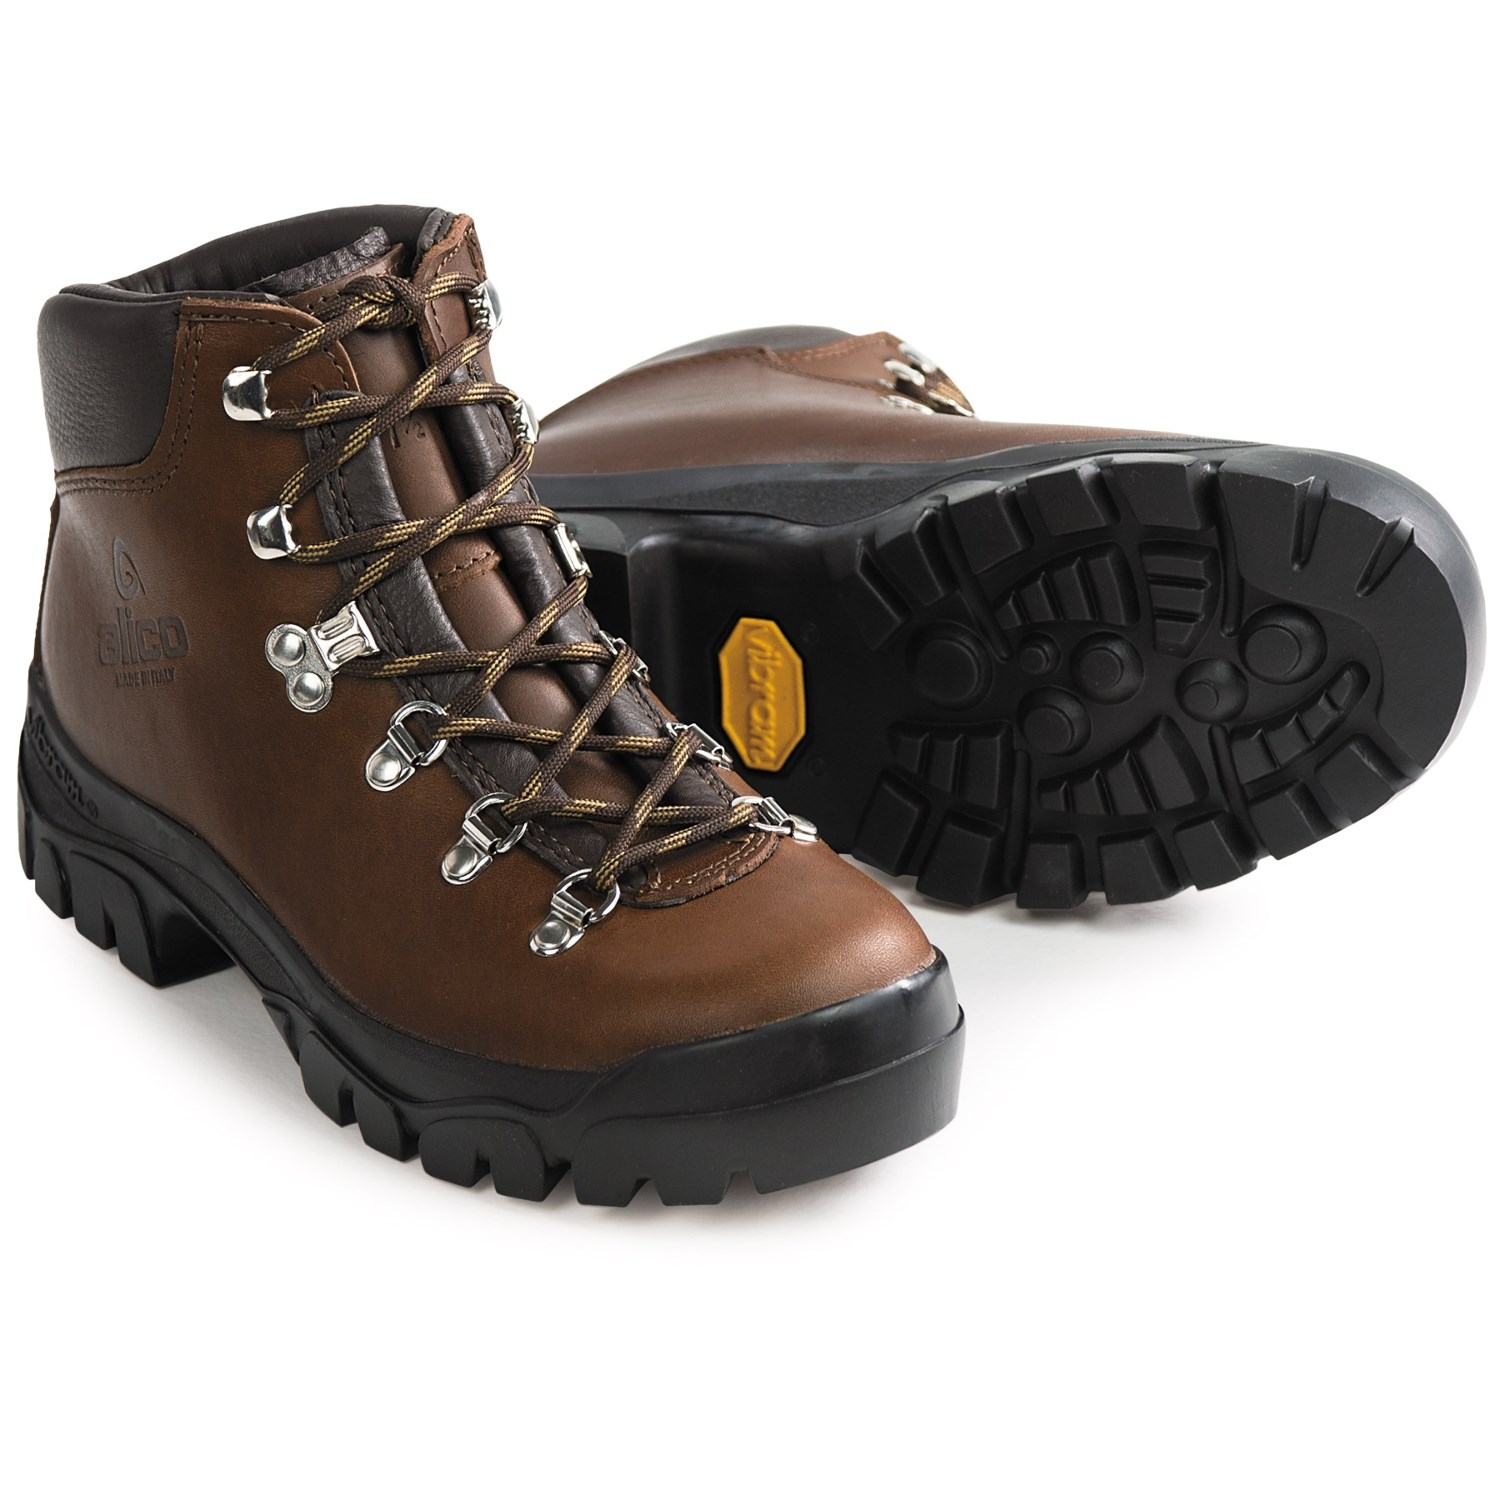 Alico Backcountry Hiking Boots For Women Save 46